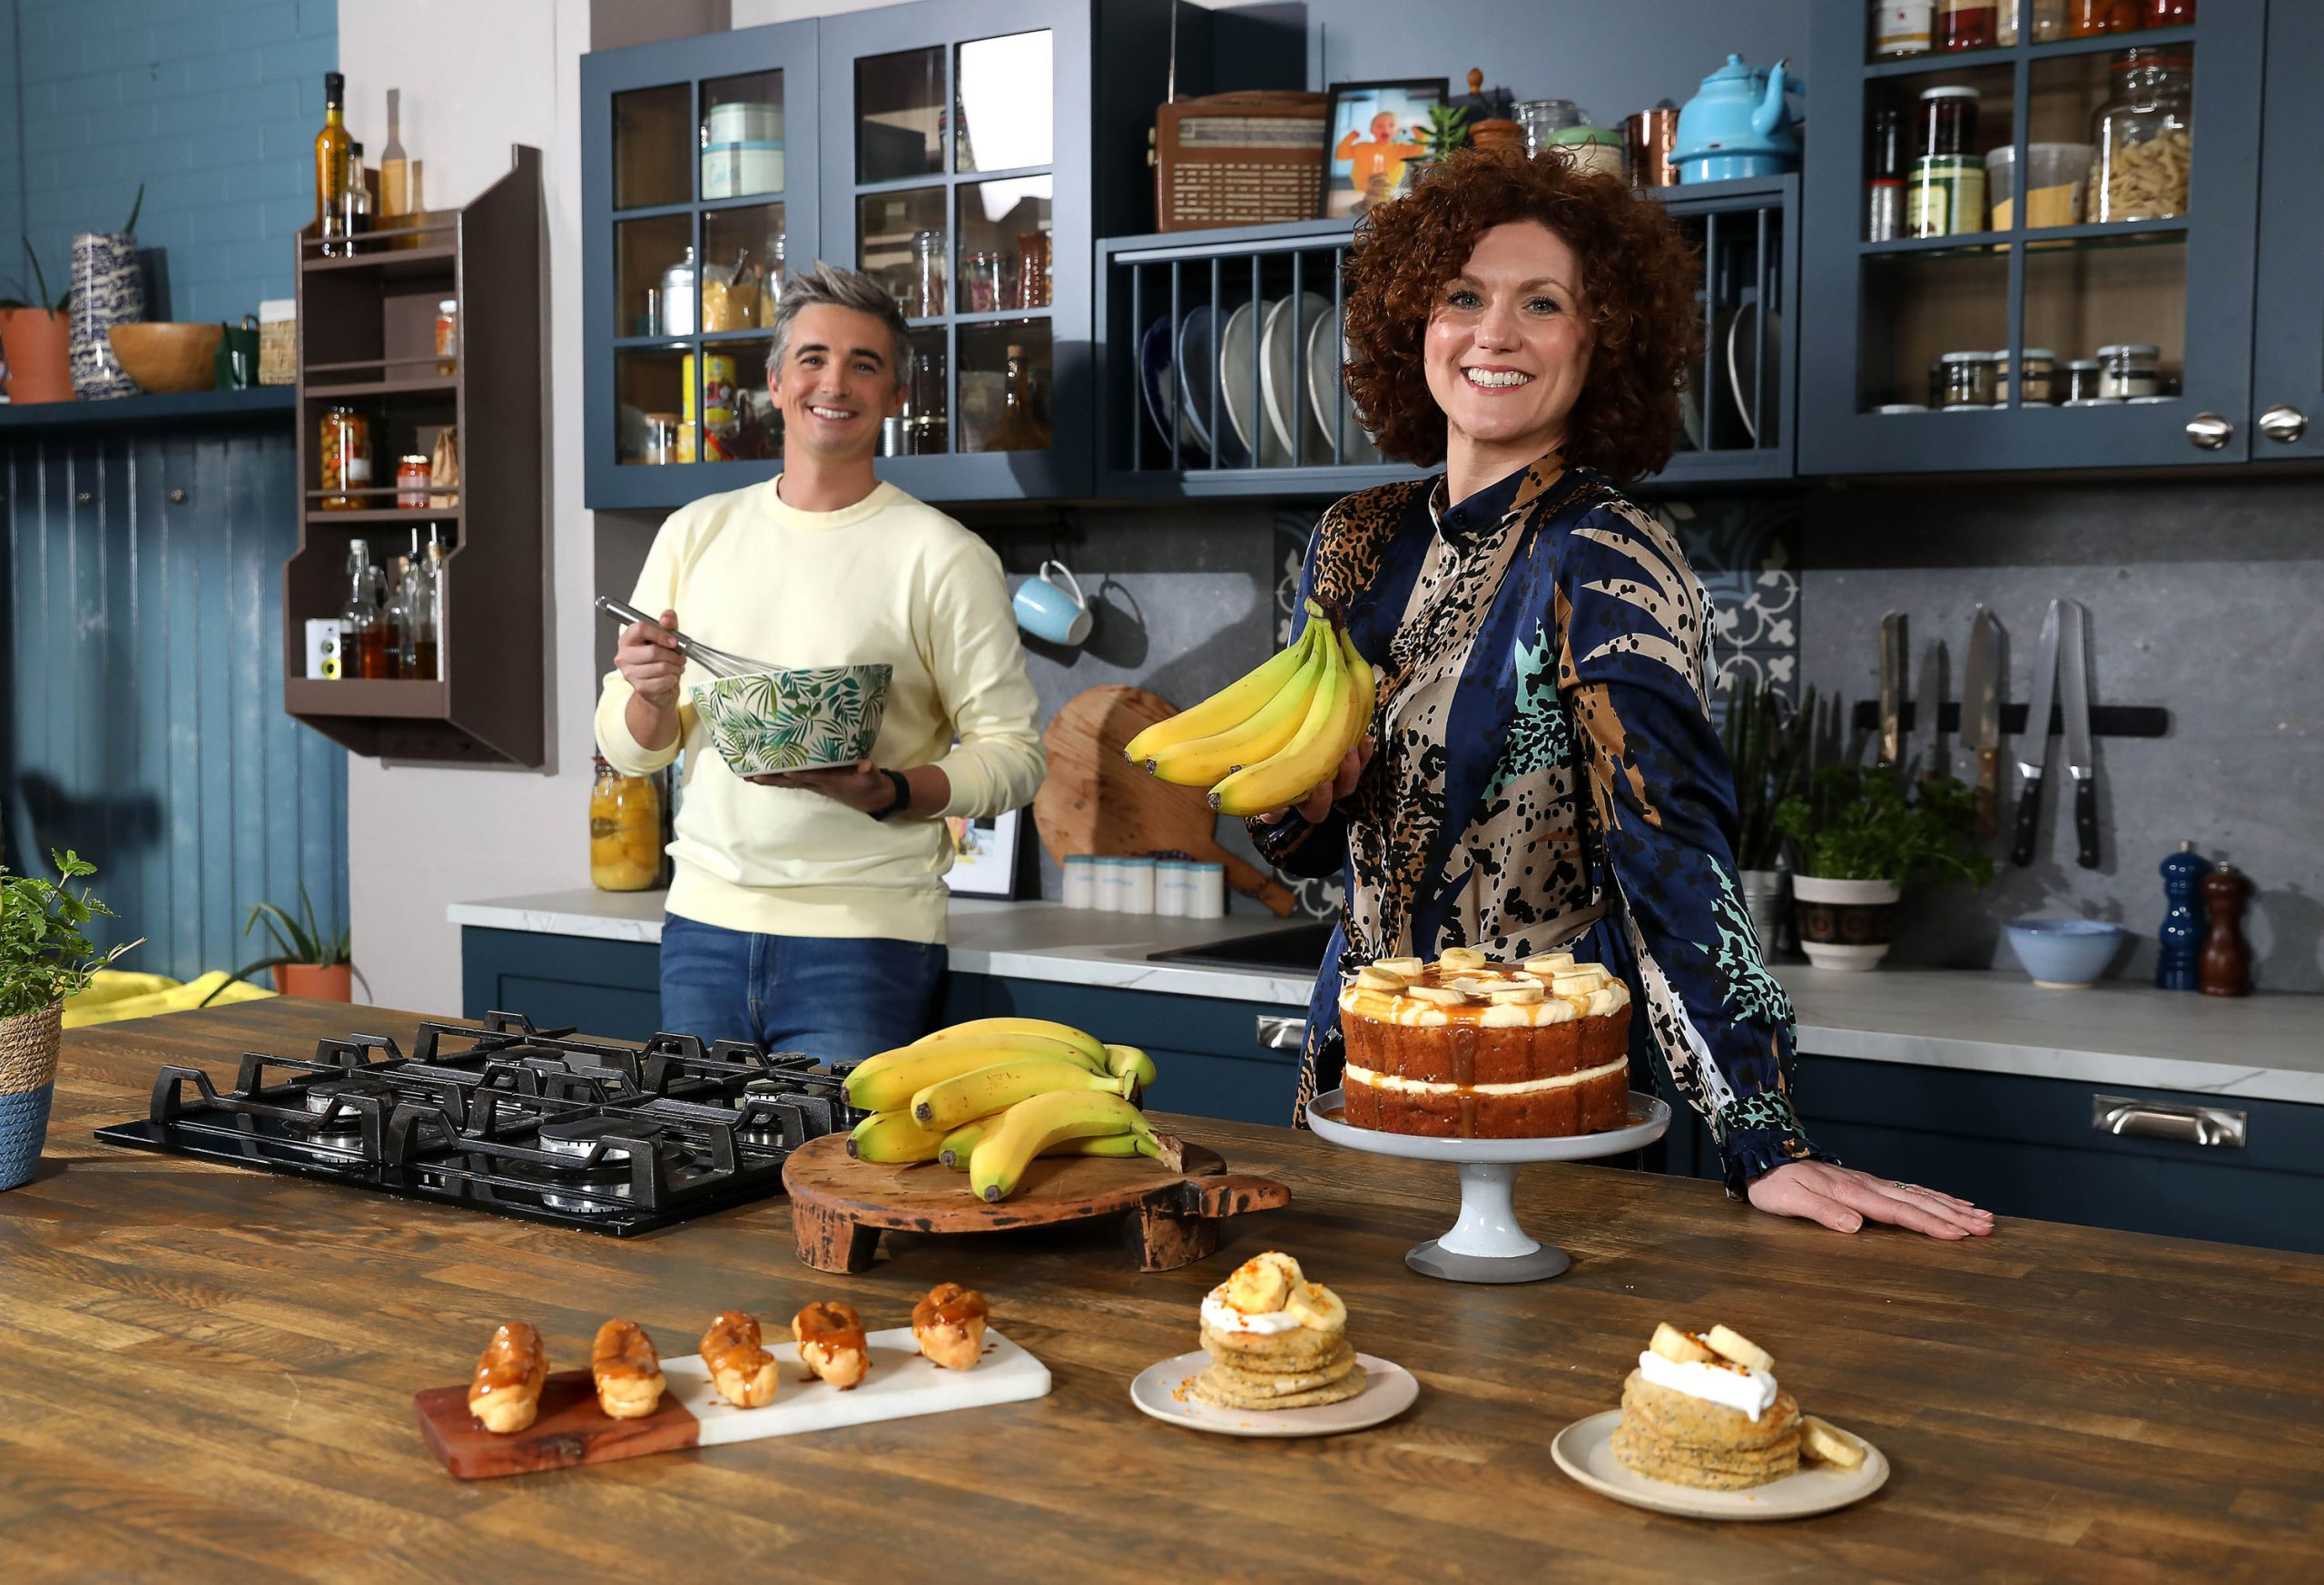 The search is on to find 'Ireland's Best Banana Dessert'